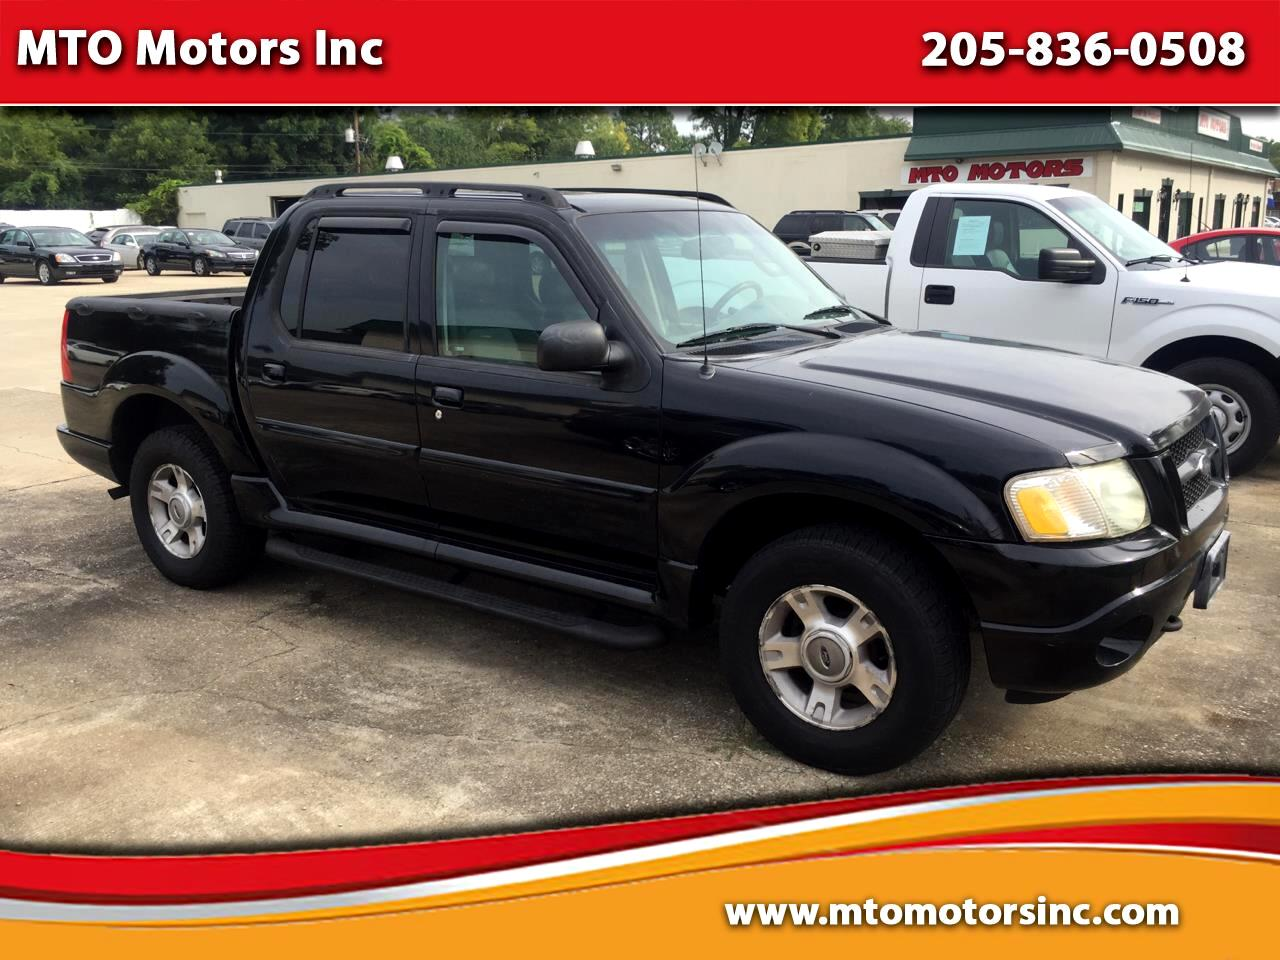 Ford Explorer Sport Trac Adrenalin 2WD 2004